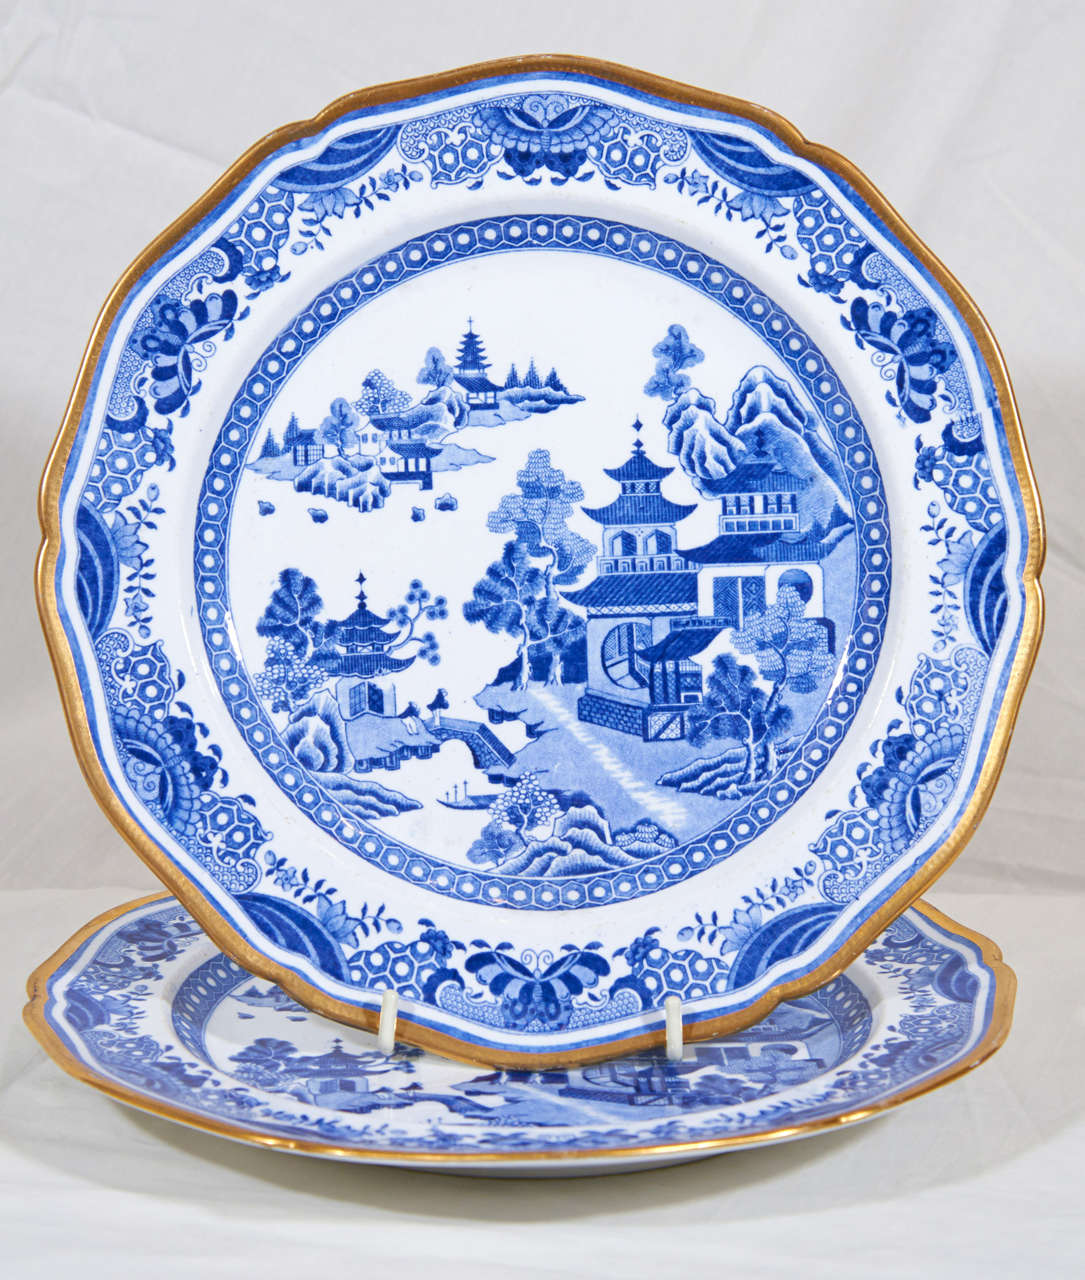 Regency Blue And White Dinner Dishes In A Spode Pattern Similar To Willow For